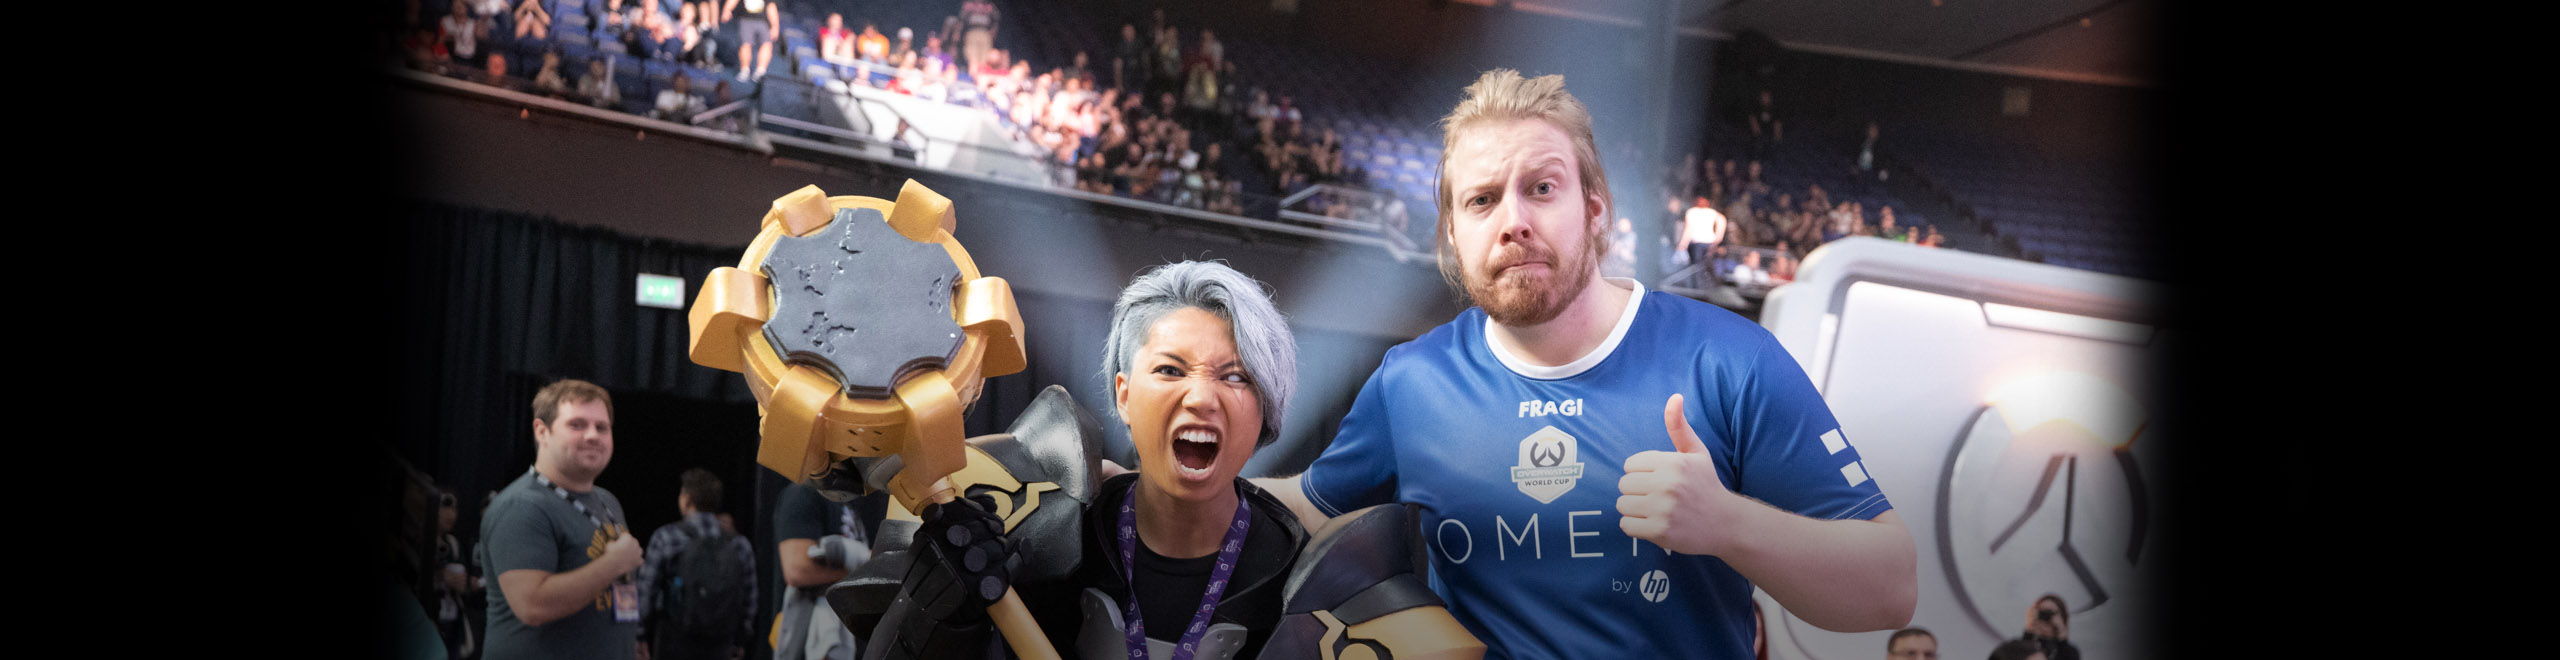 Nuestras fotos preferidas de la Overwatch World Cup